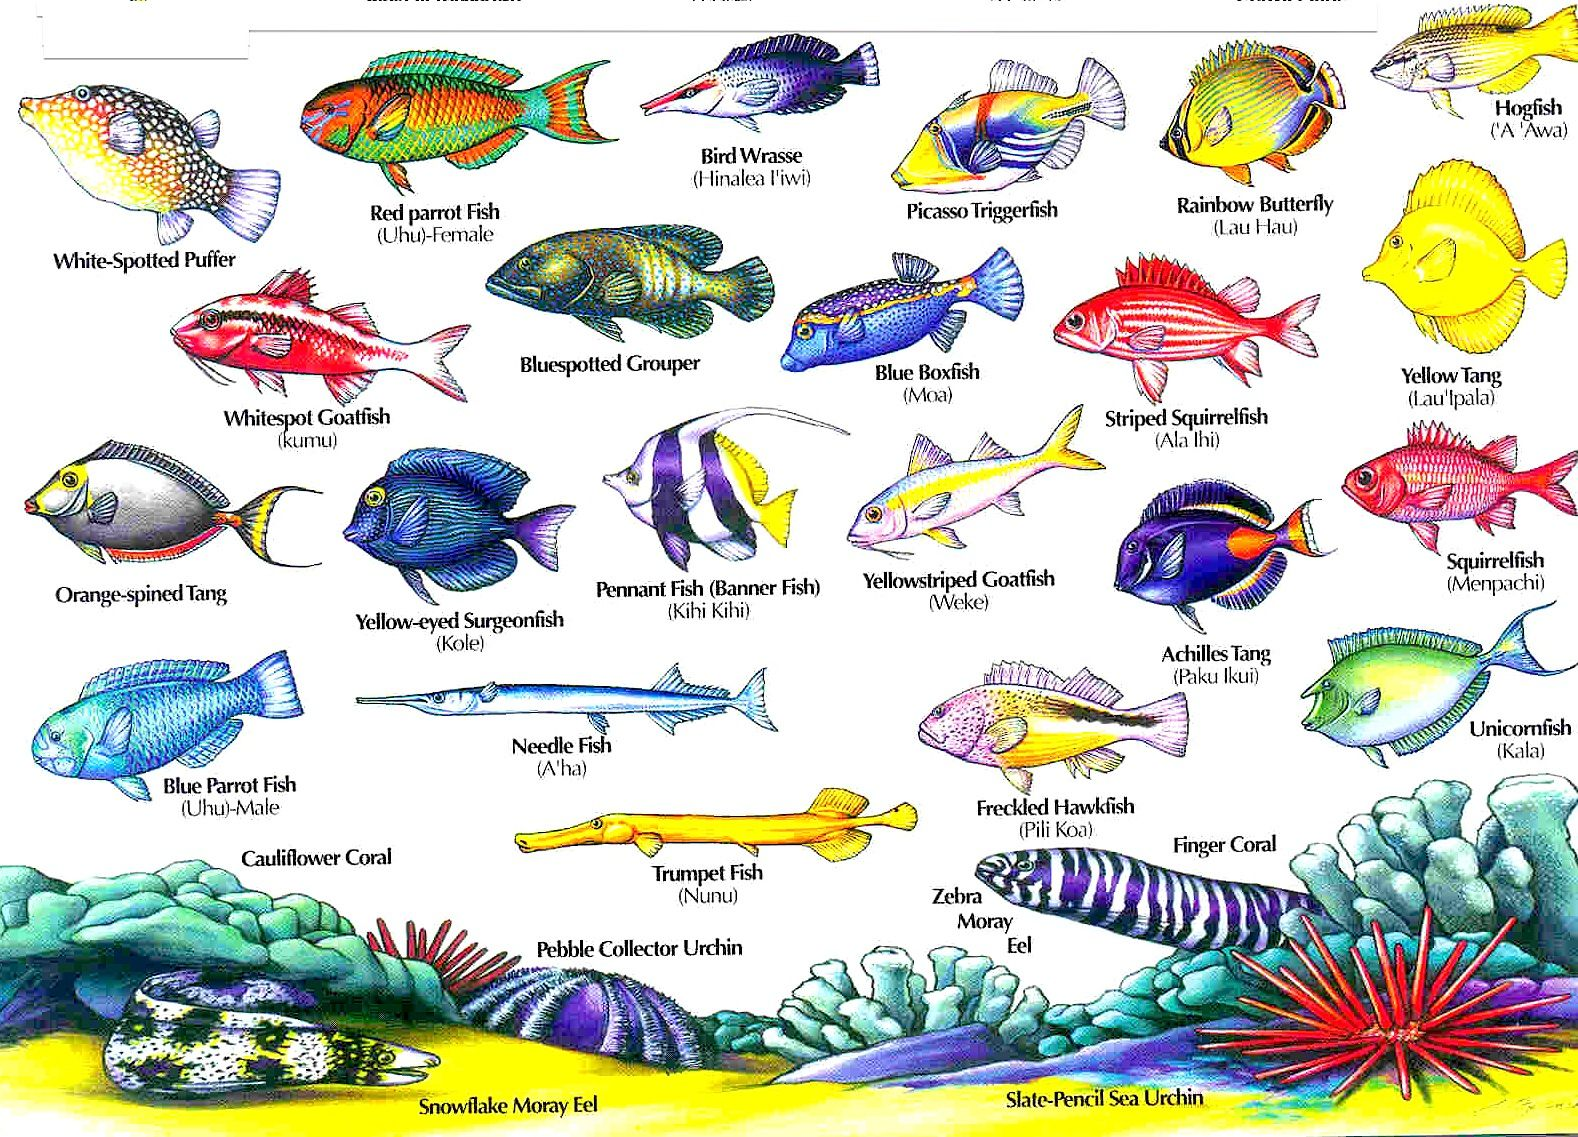 hawaii reef fish guide with hawaiian names 2 aloha joe